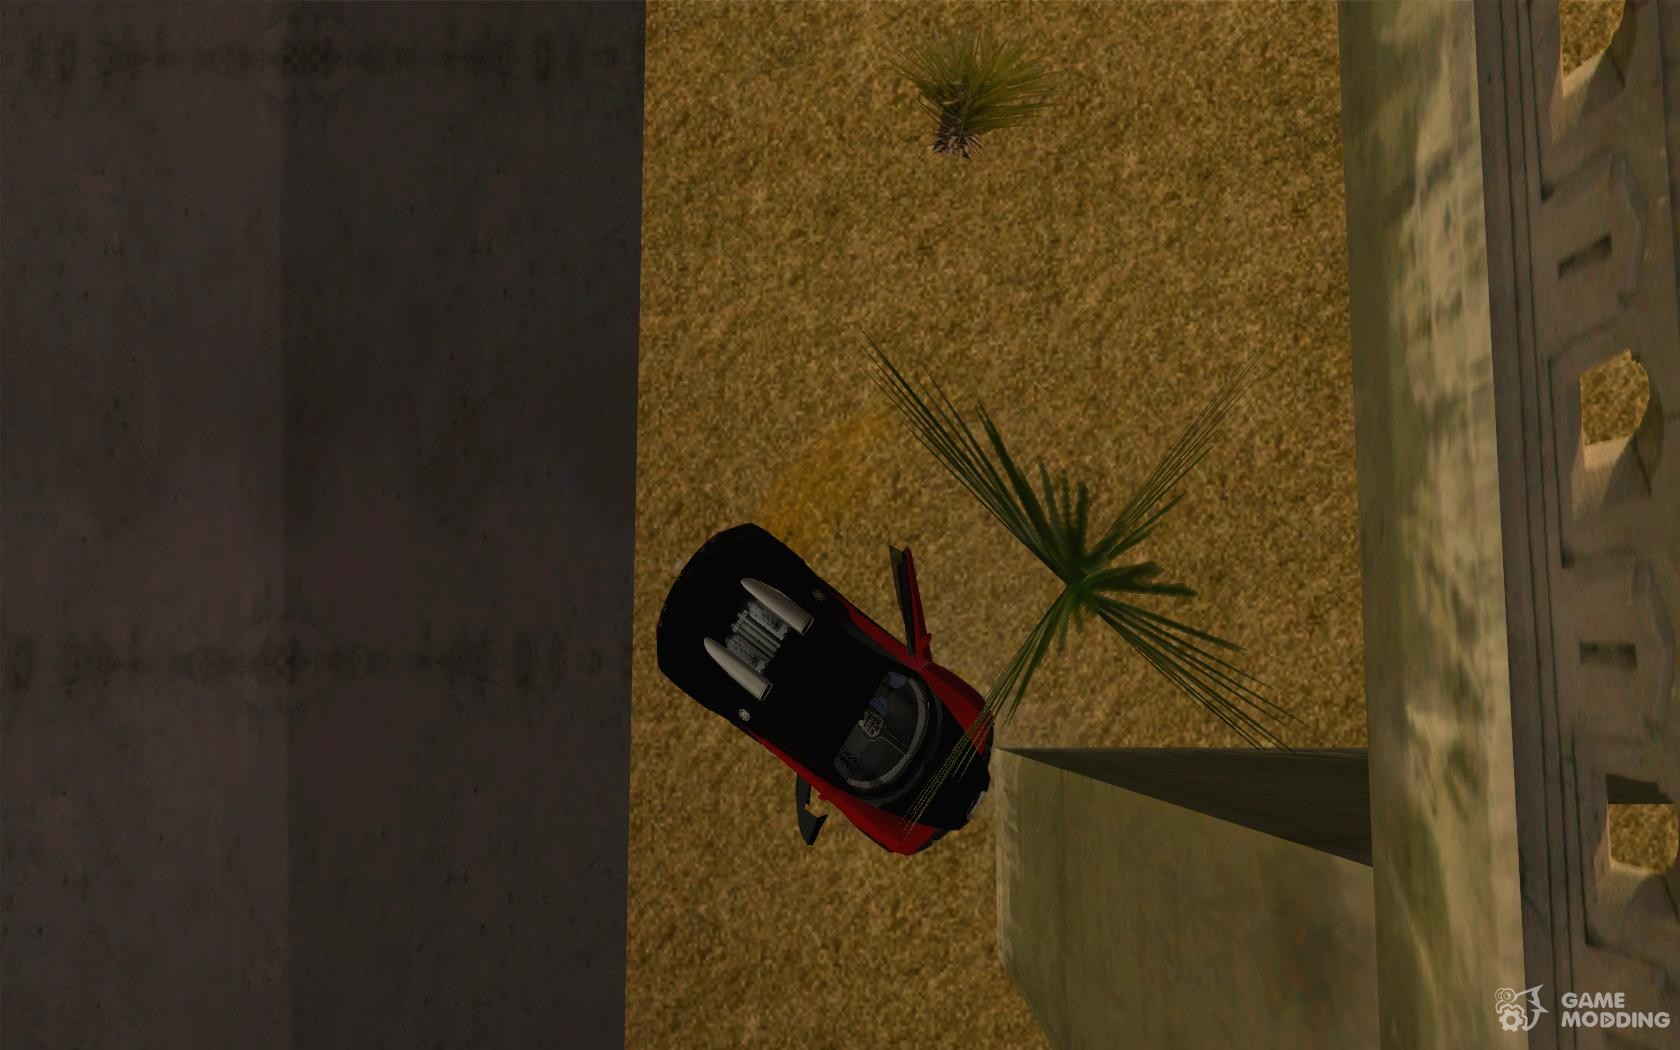 gta san andreas how to change camera view